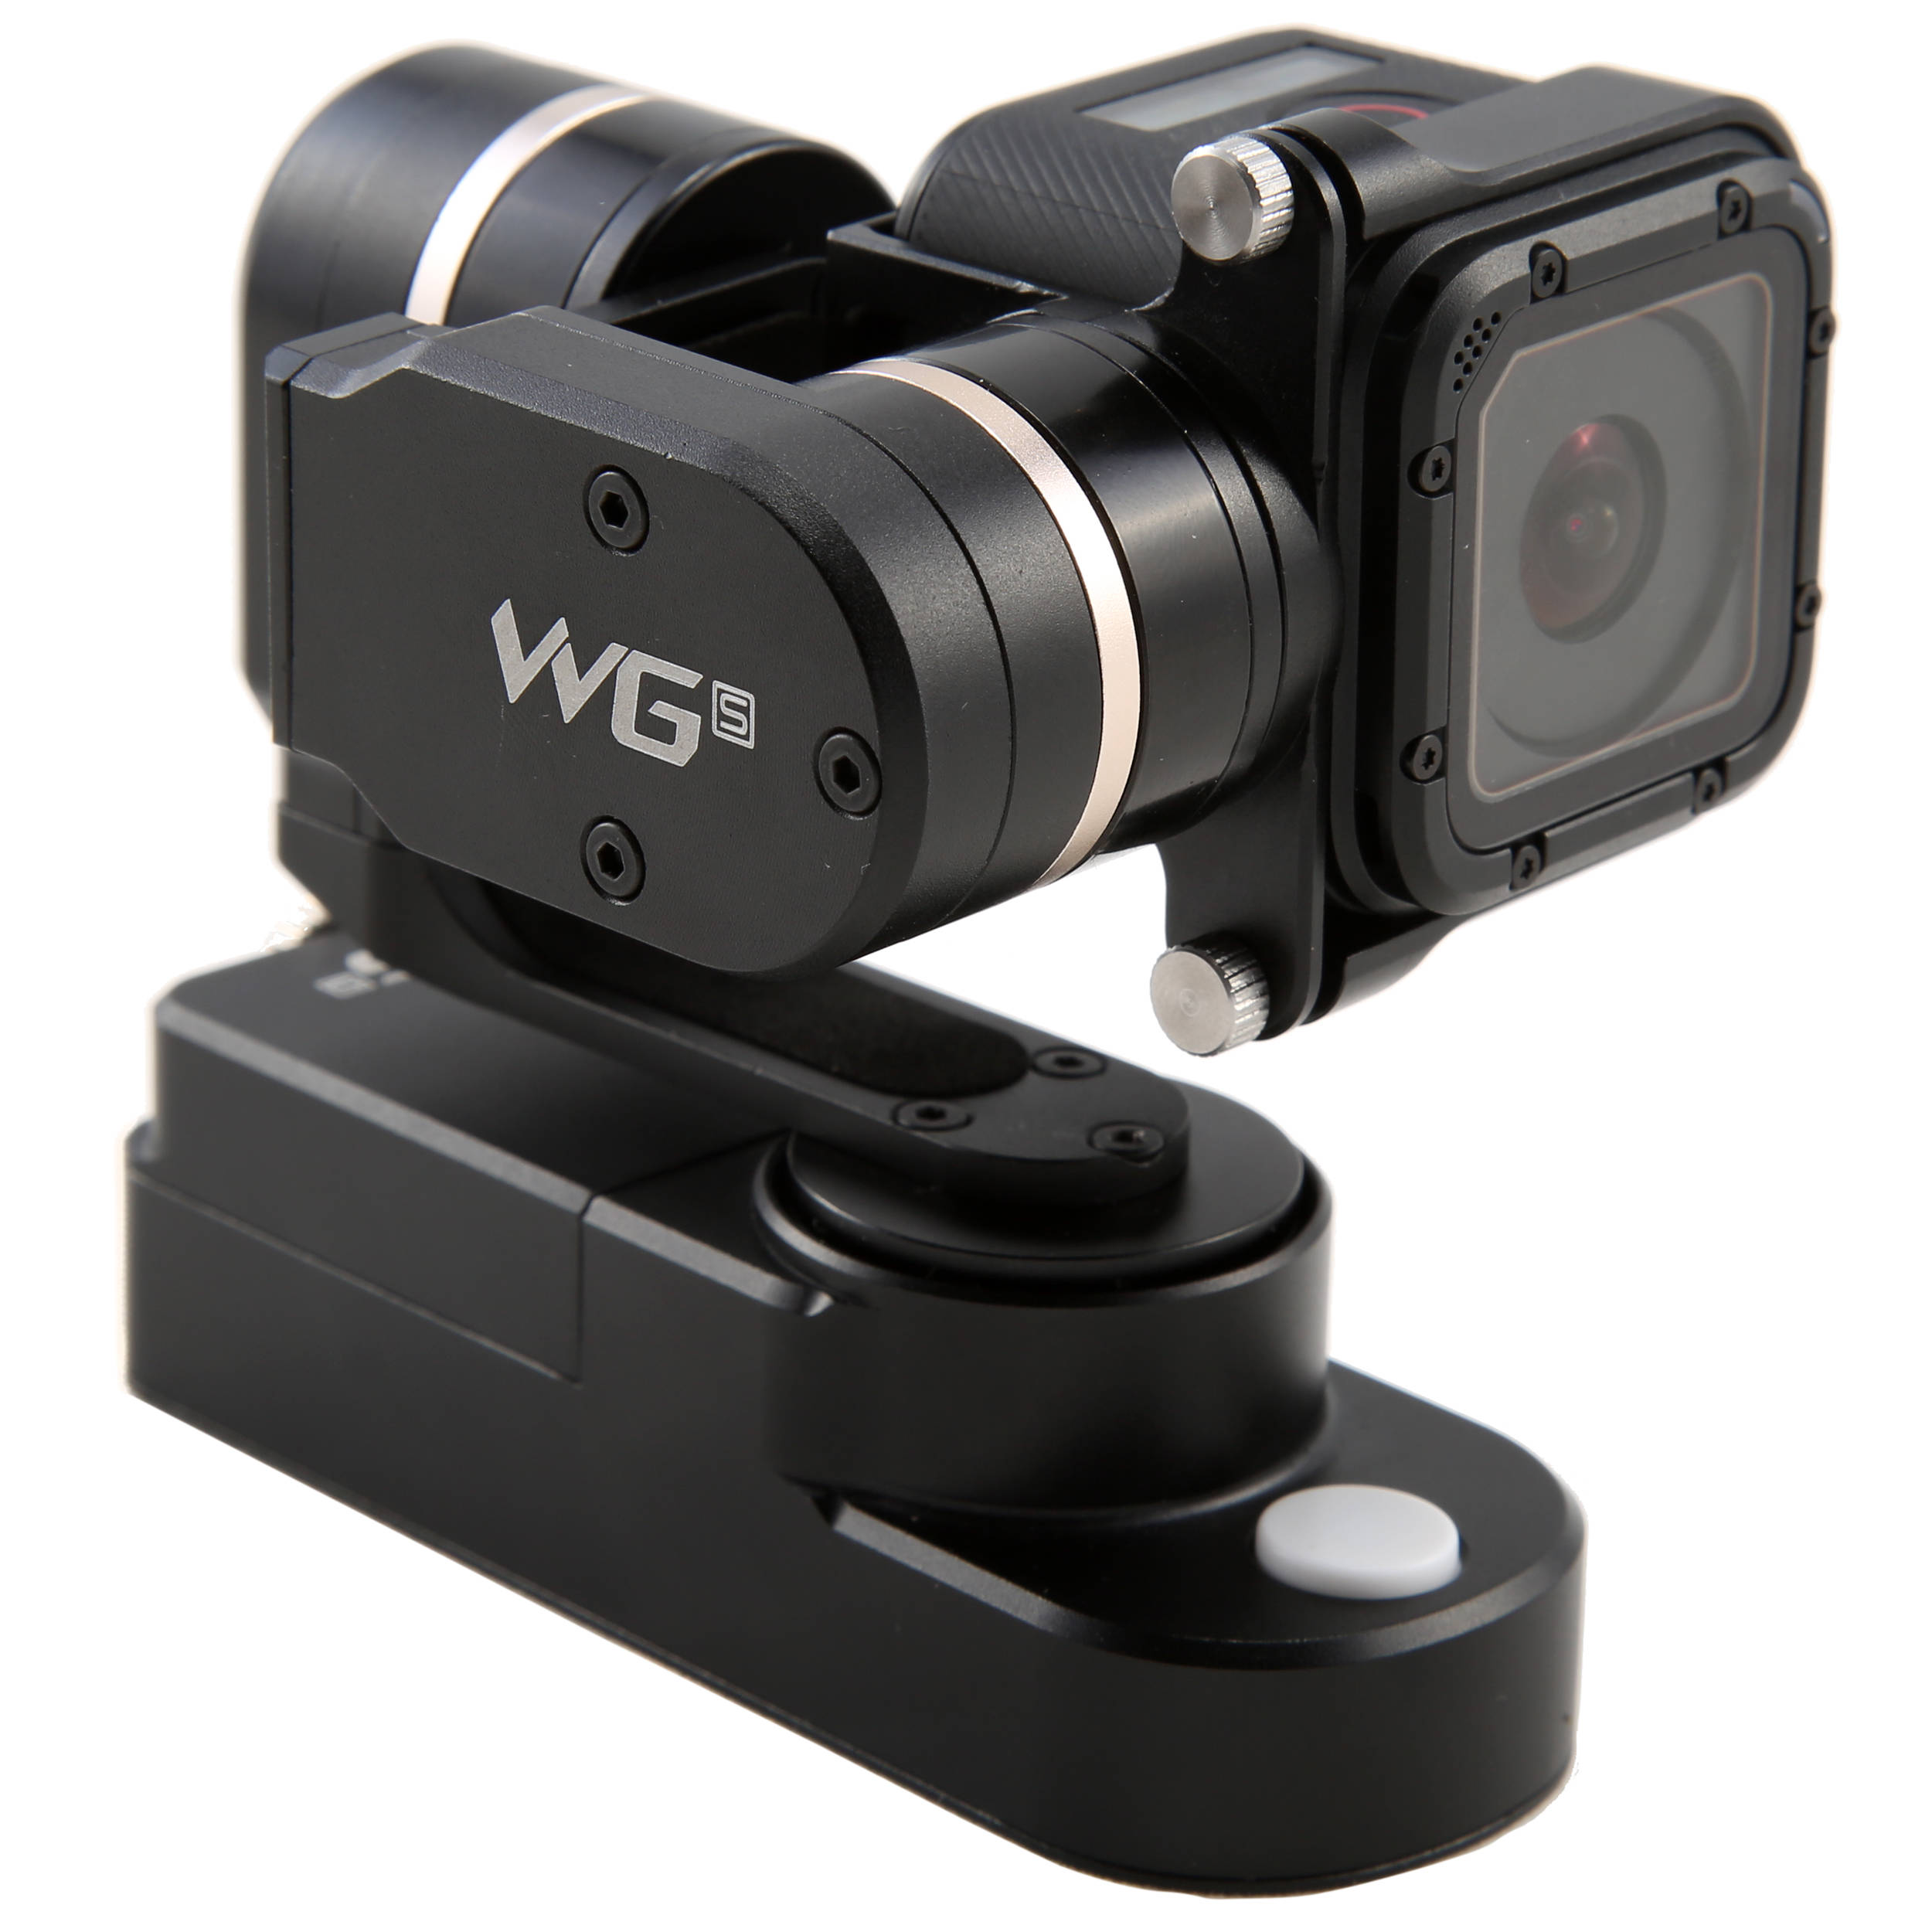 Fy Wgs Gimbal Gopro Session Stabilizer Voosestore Kabel 35mm Mic Adapter Cable For Hero 3